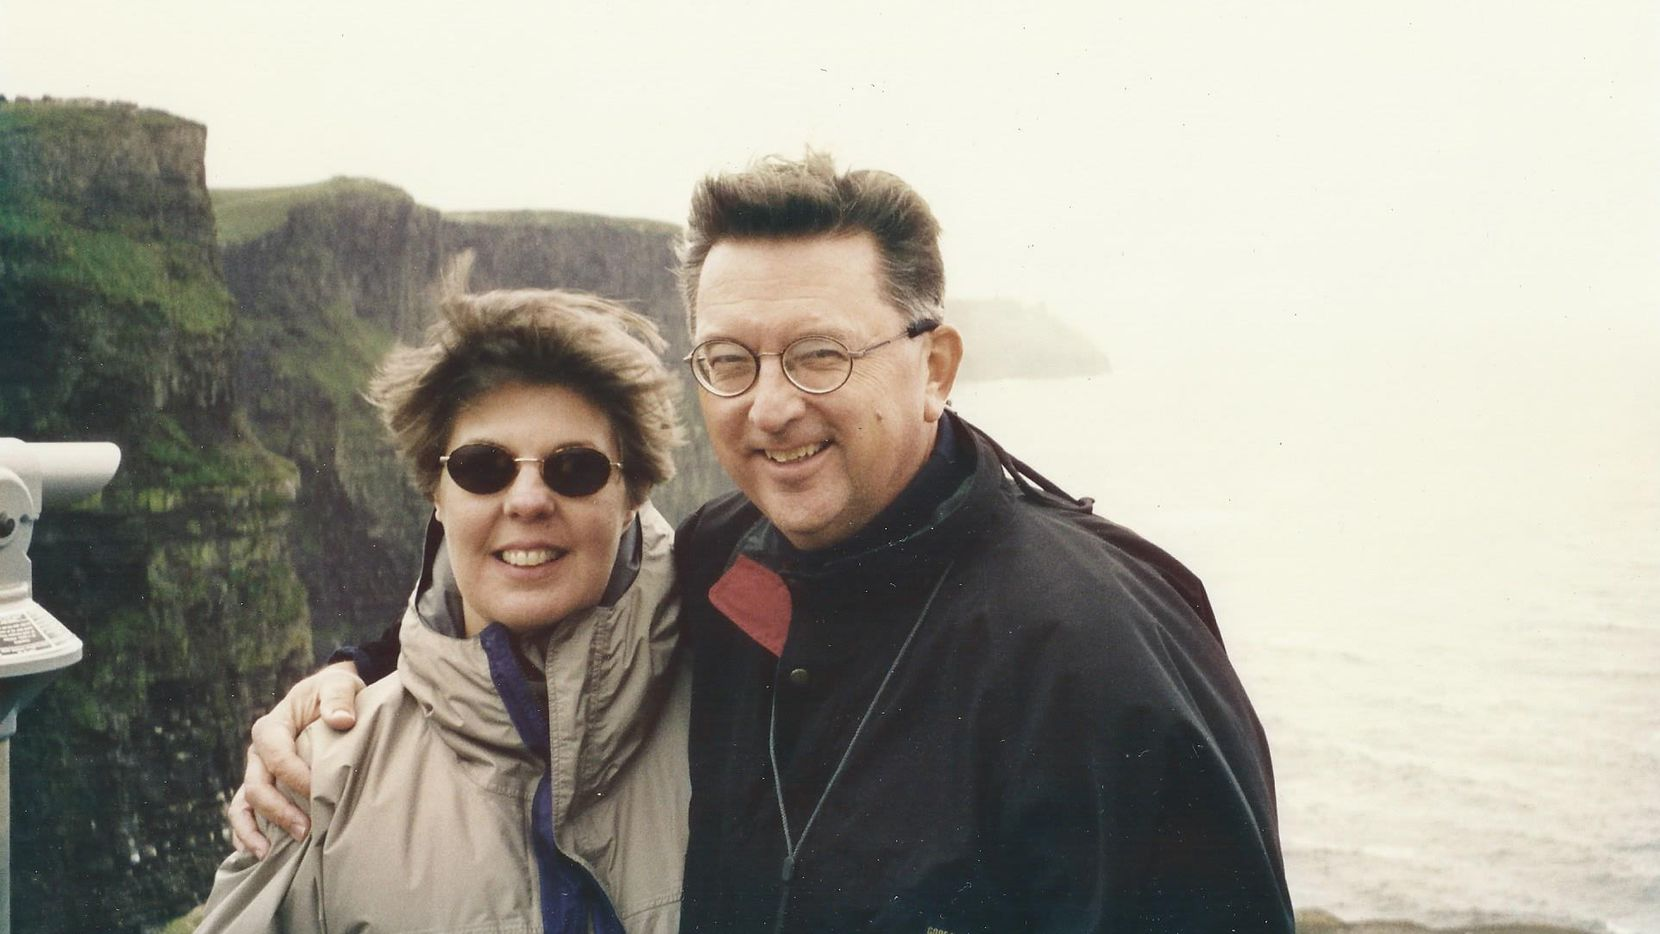 John and Eileen Lumpkin in 1999 at Cliffs of Moher on west coast of Ireland